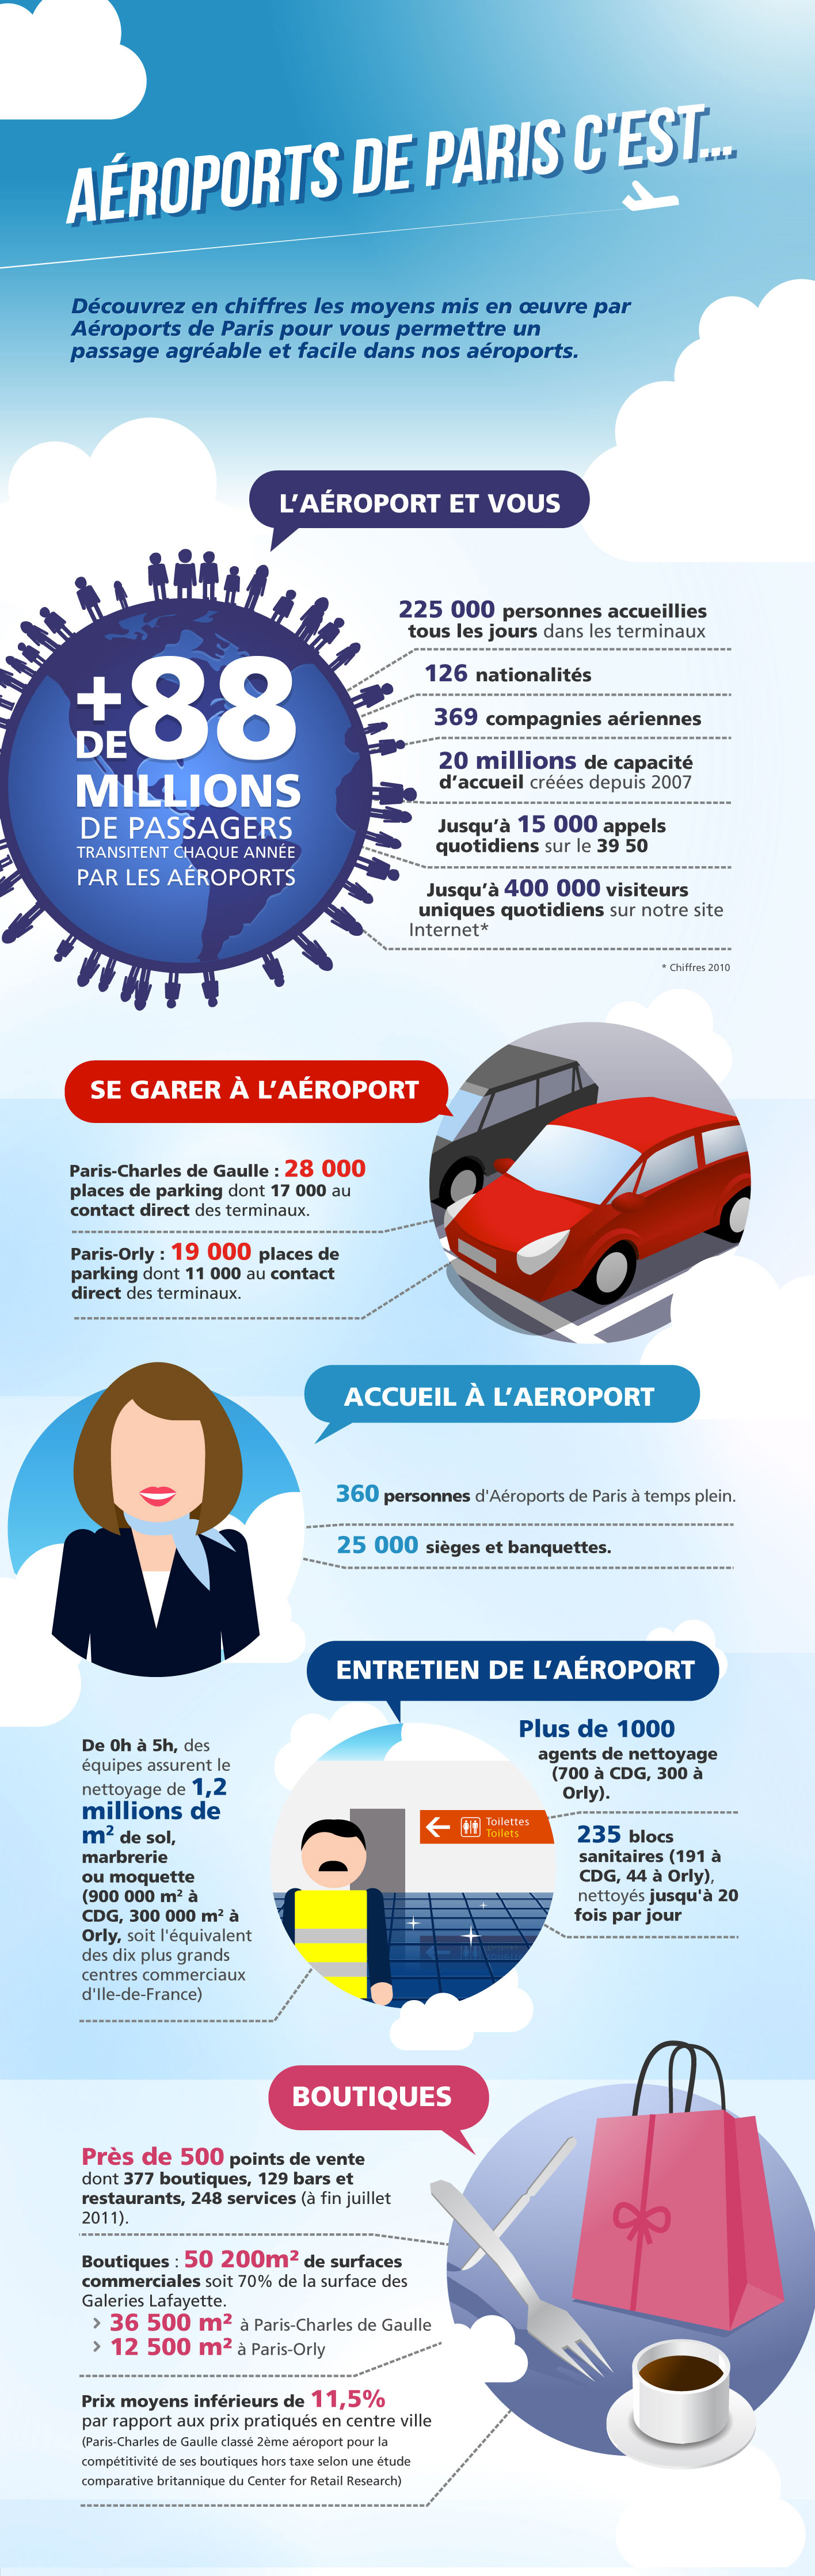 infographie-aeroport-de-paris0